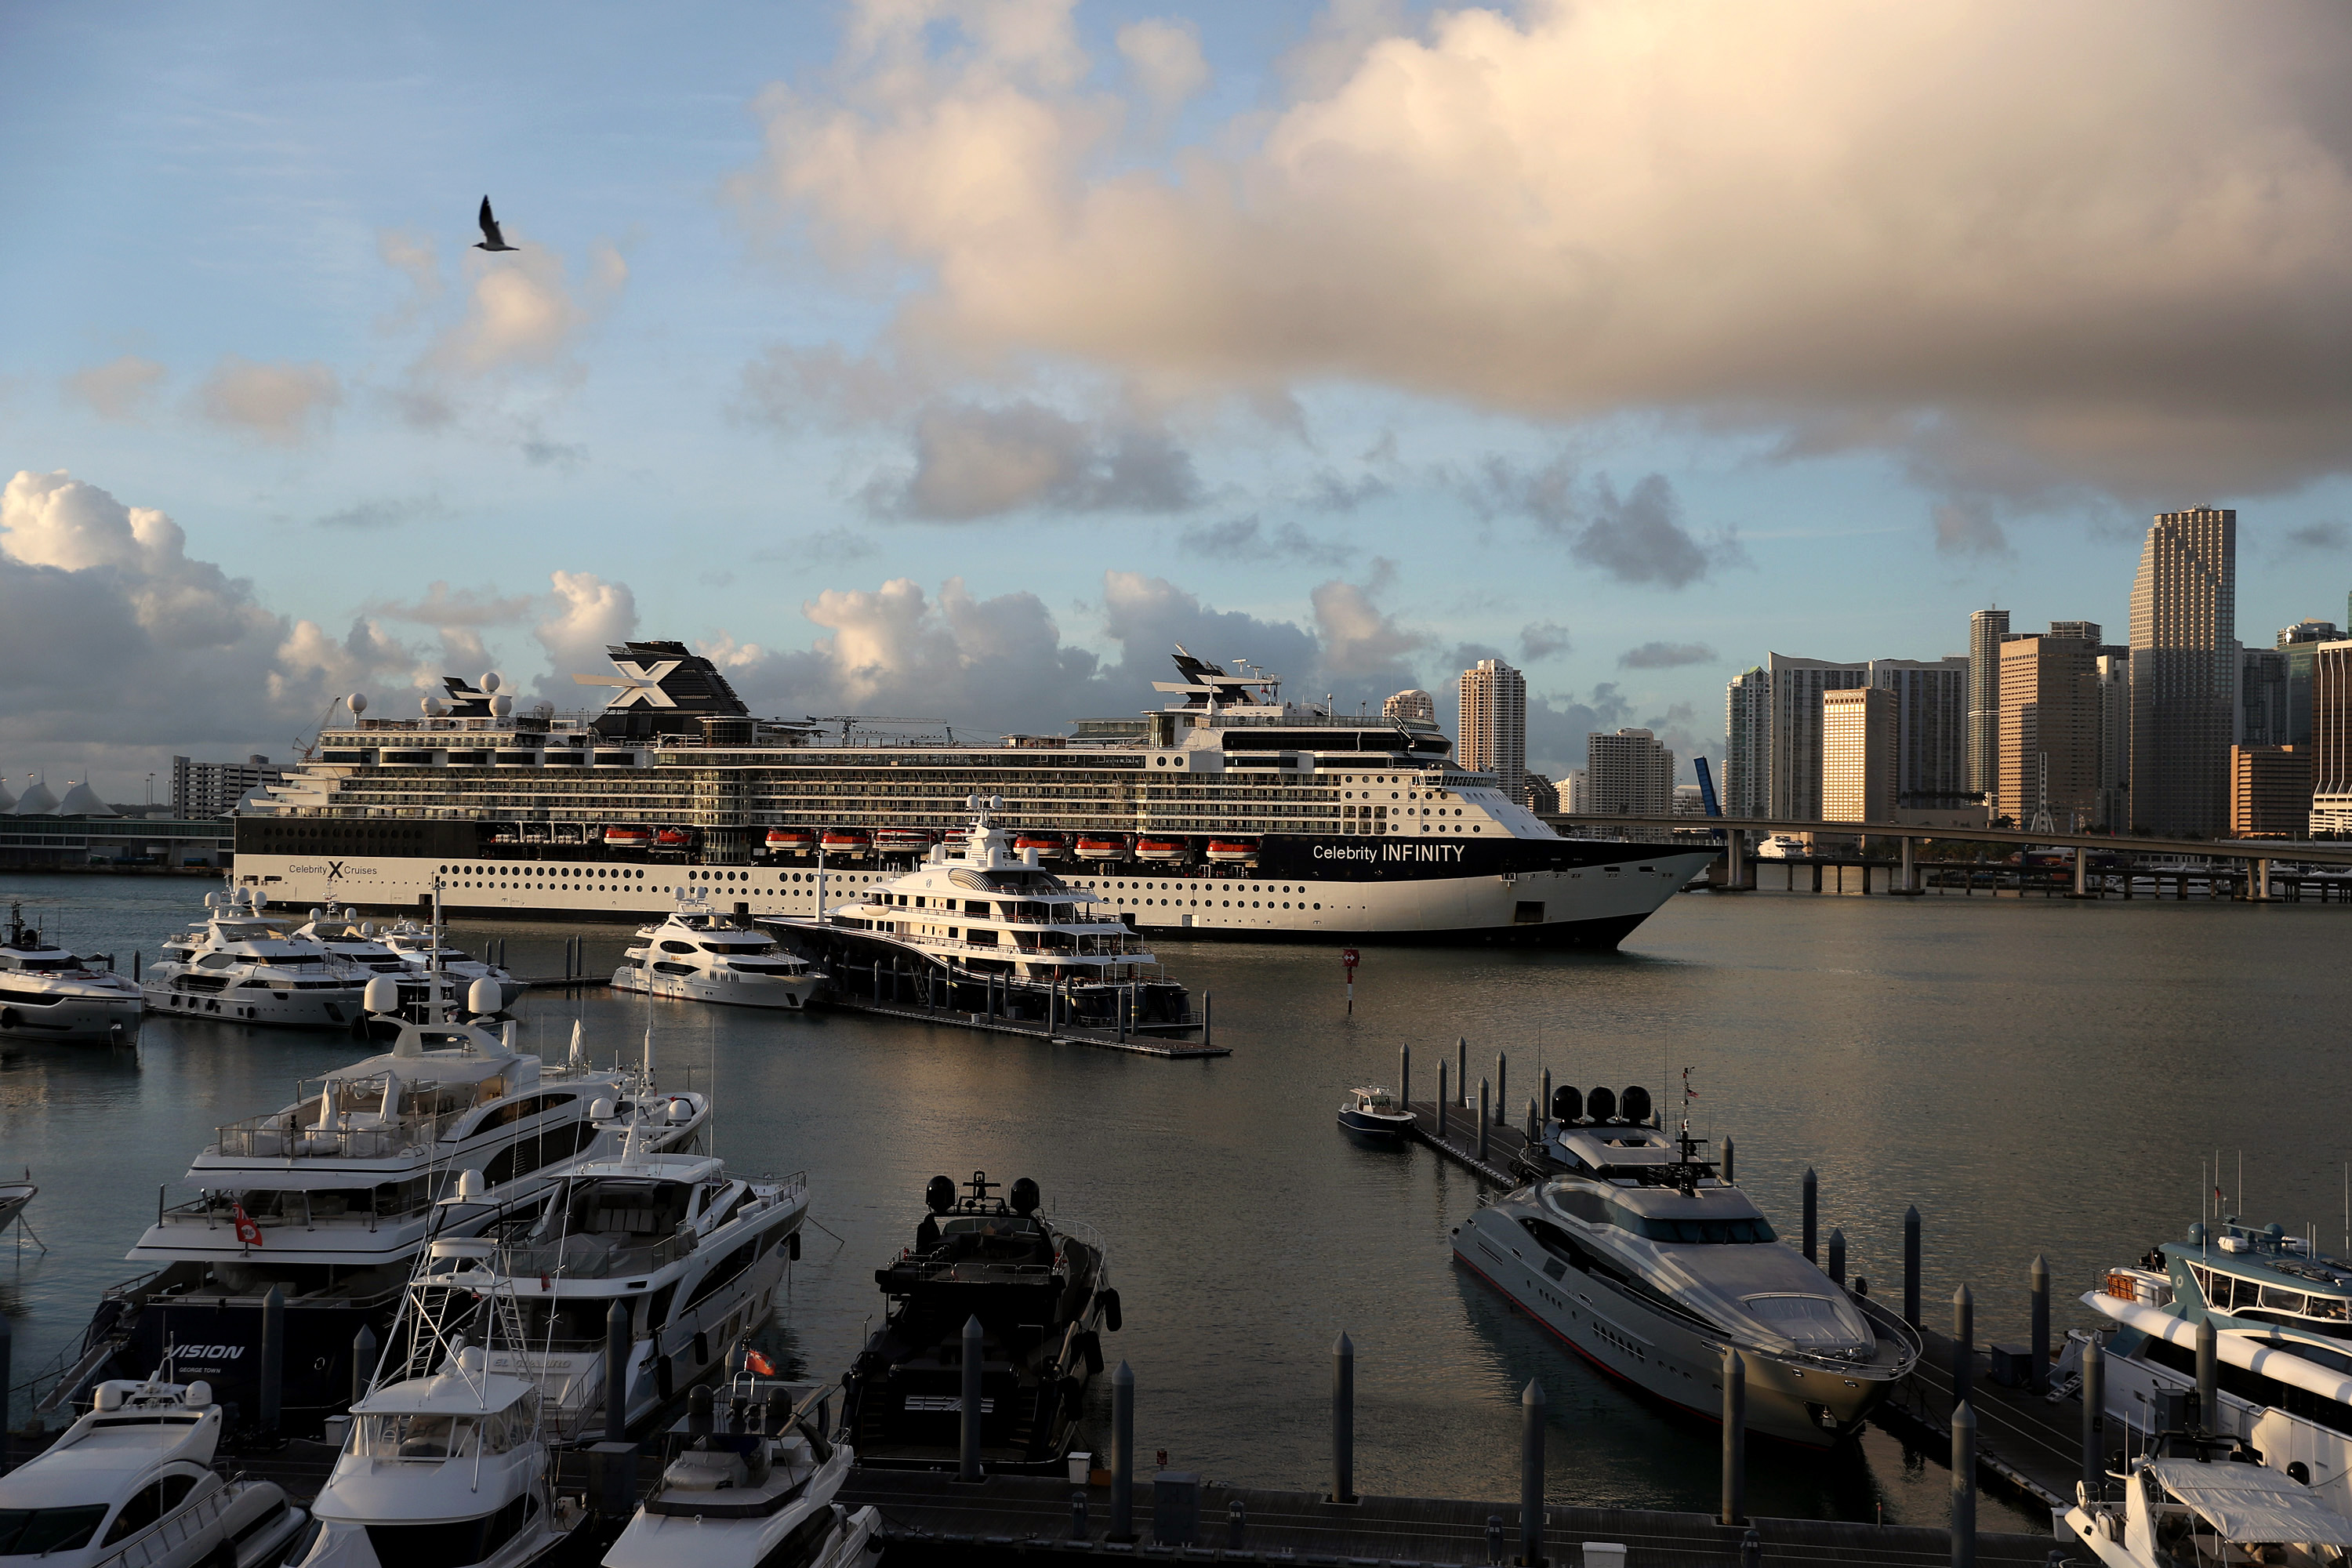 The Celebrity Infinity Cruise ship, a wholly owned subsidiary of Royal Caribbean Cruises, returns to PortMiami in Florida from a cruise in the Caribbean on March 14.